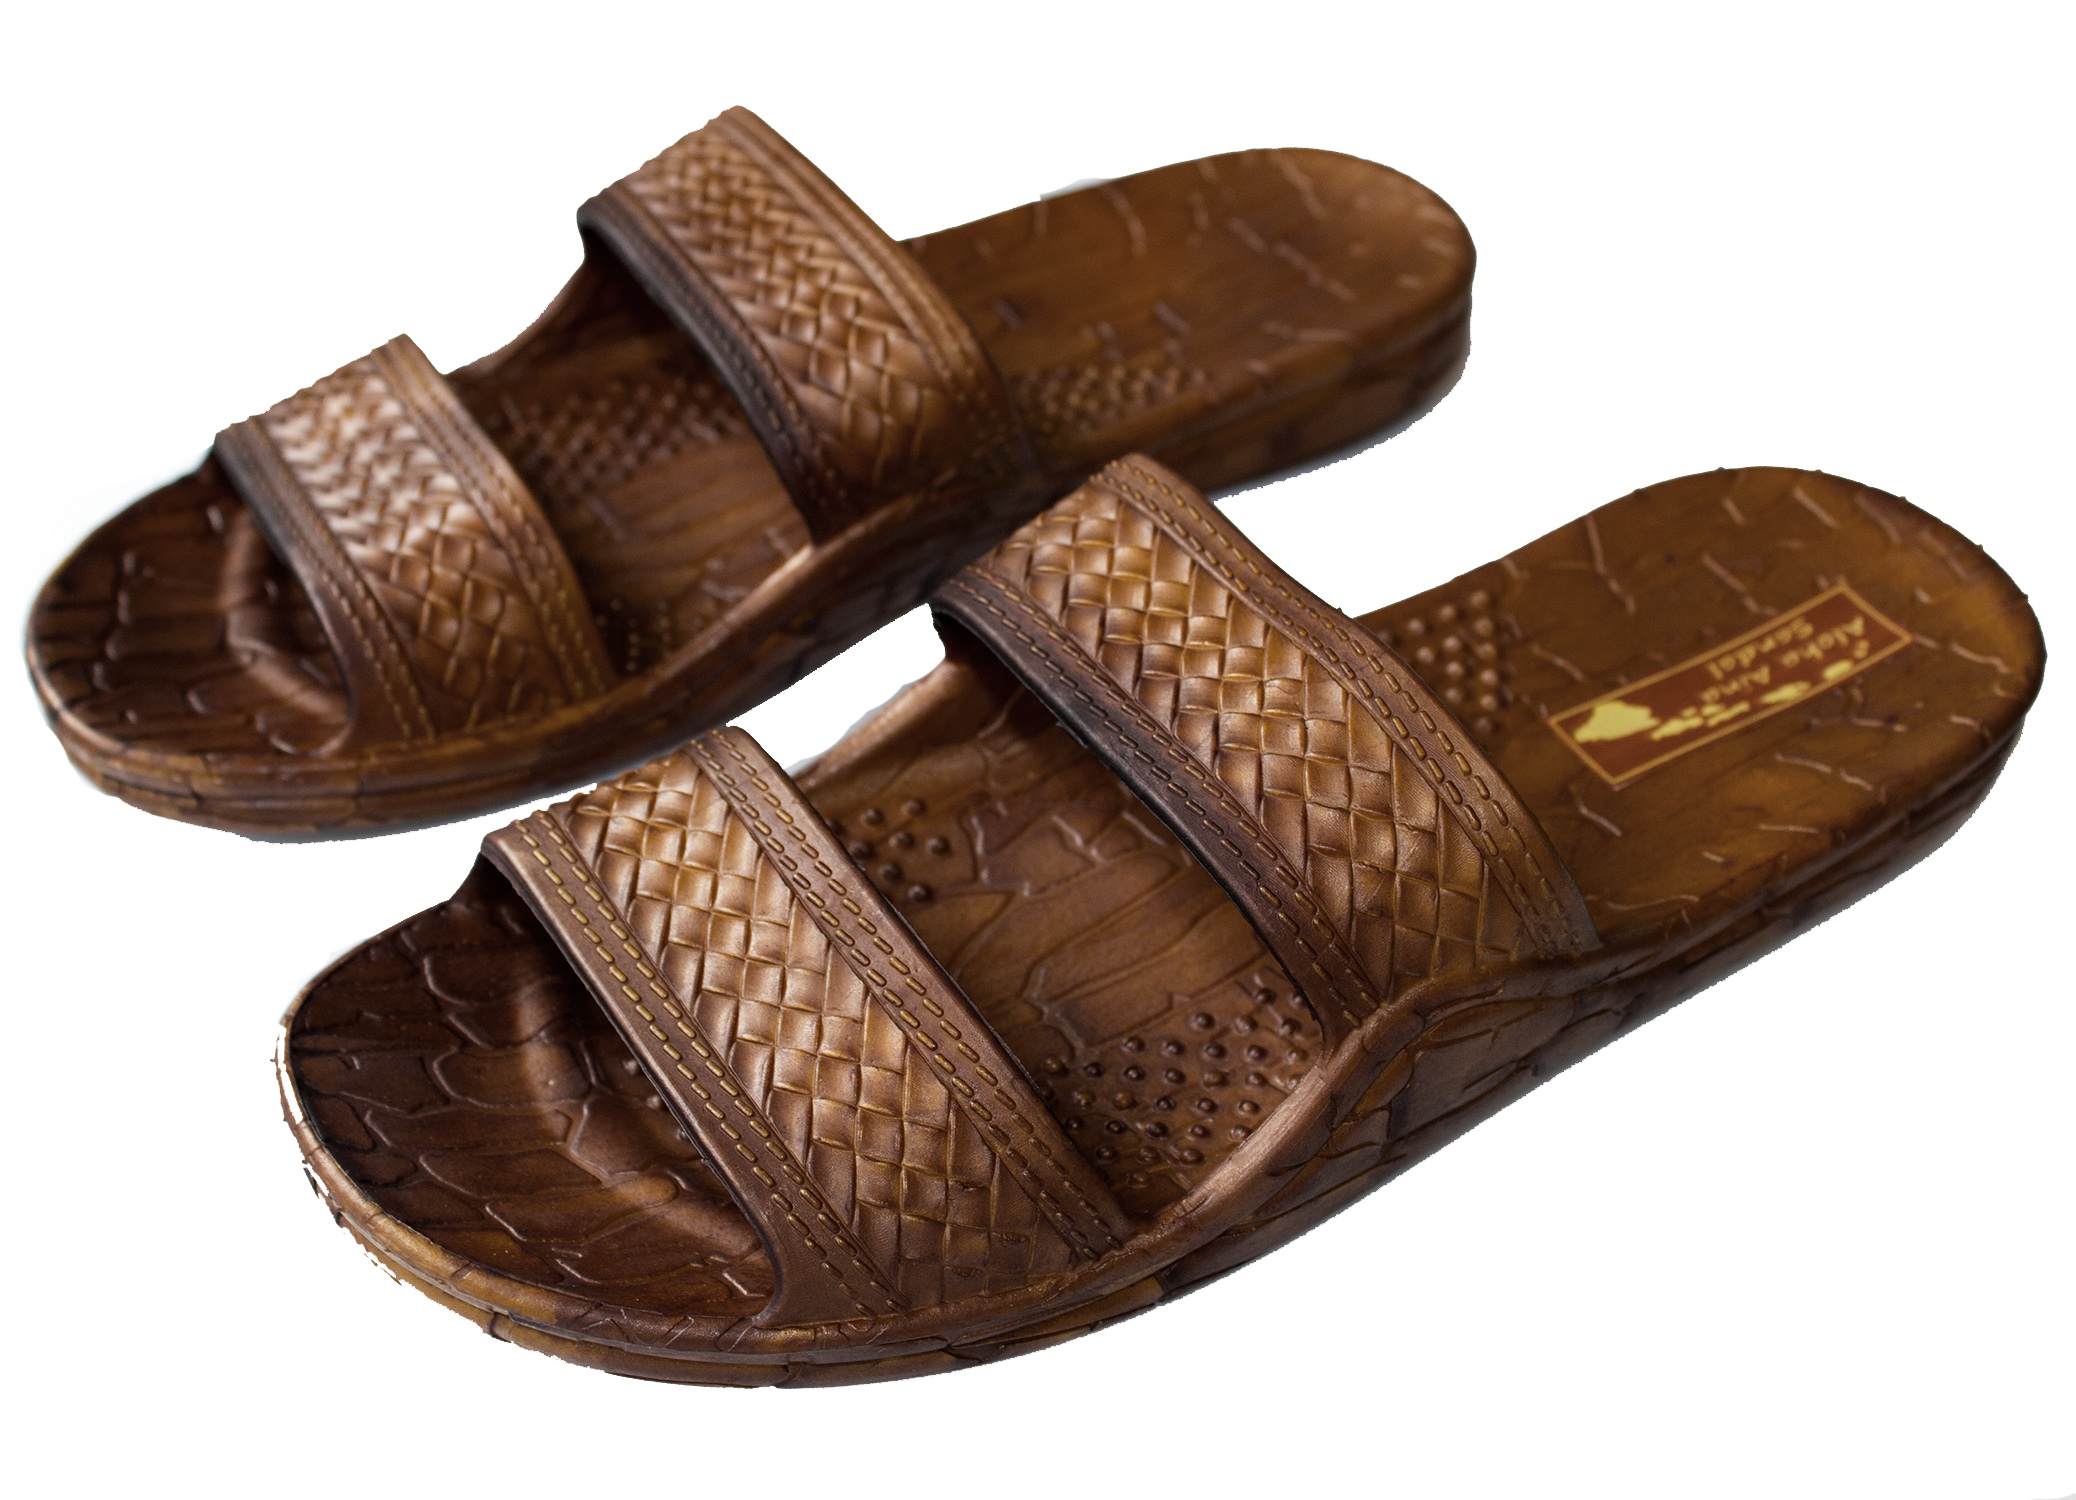 9ca80ff6f794 Aloha aina sandals hawaii brown or black jesus sandal slipper for men women  and teen classic